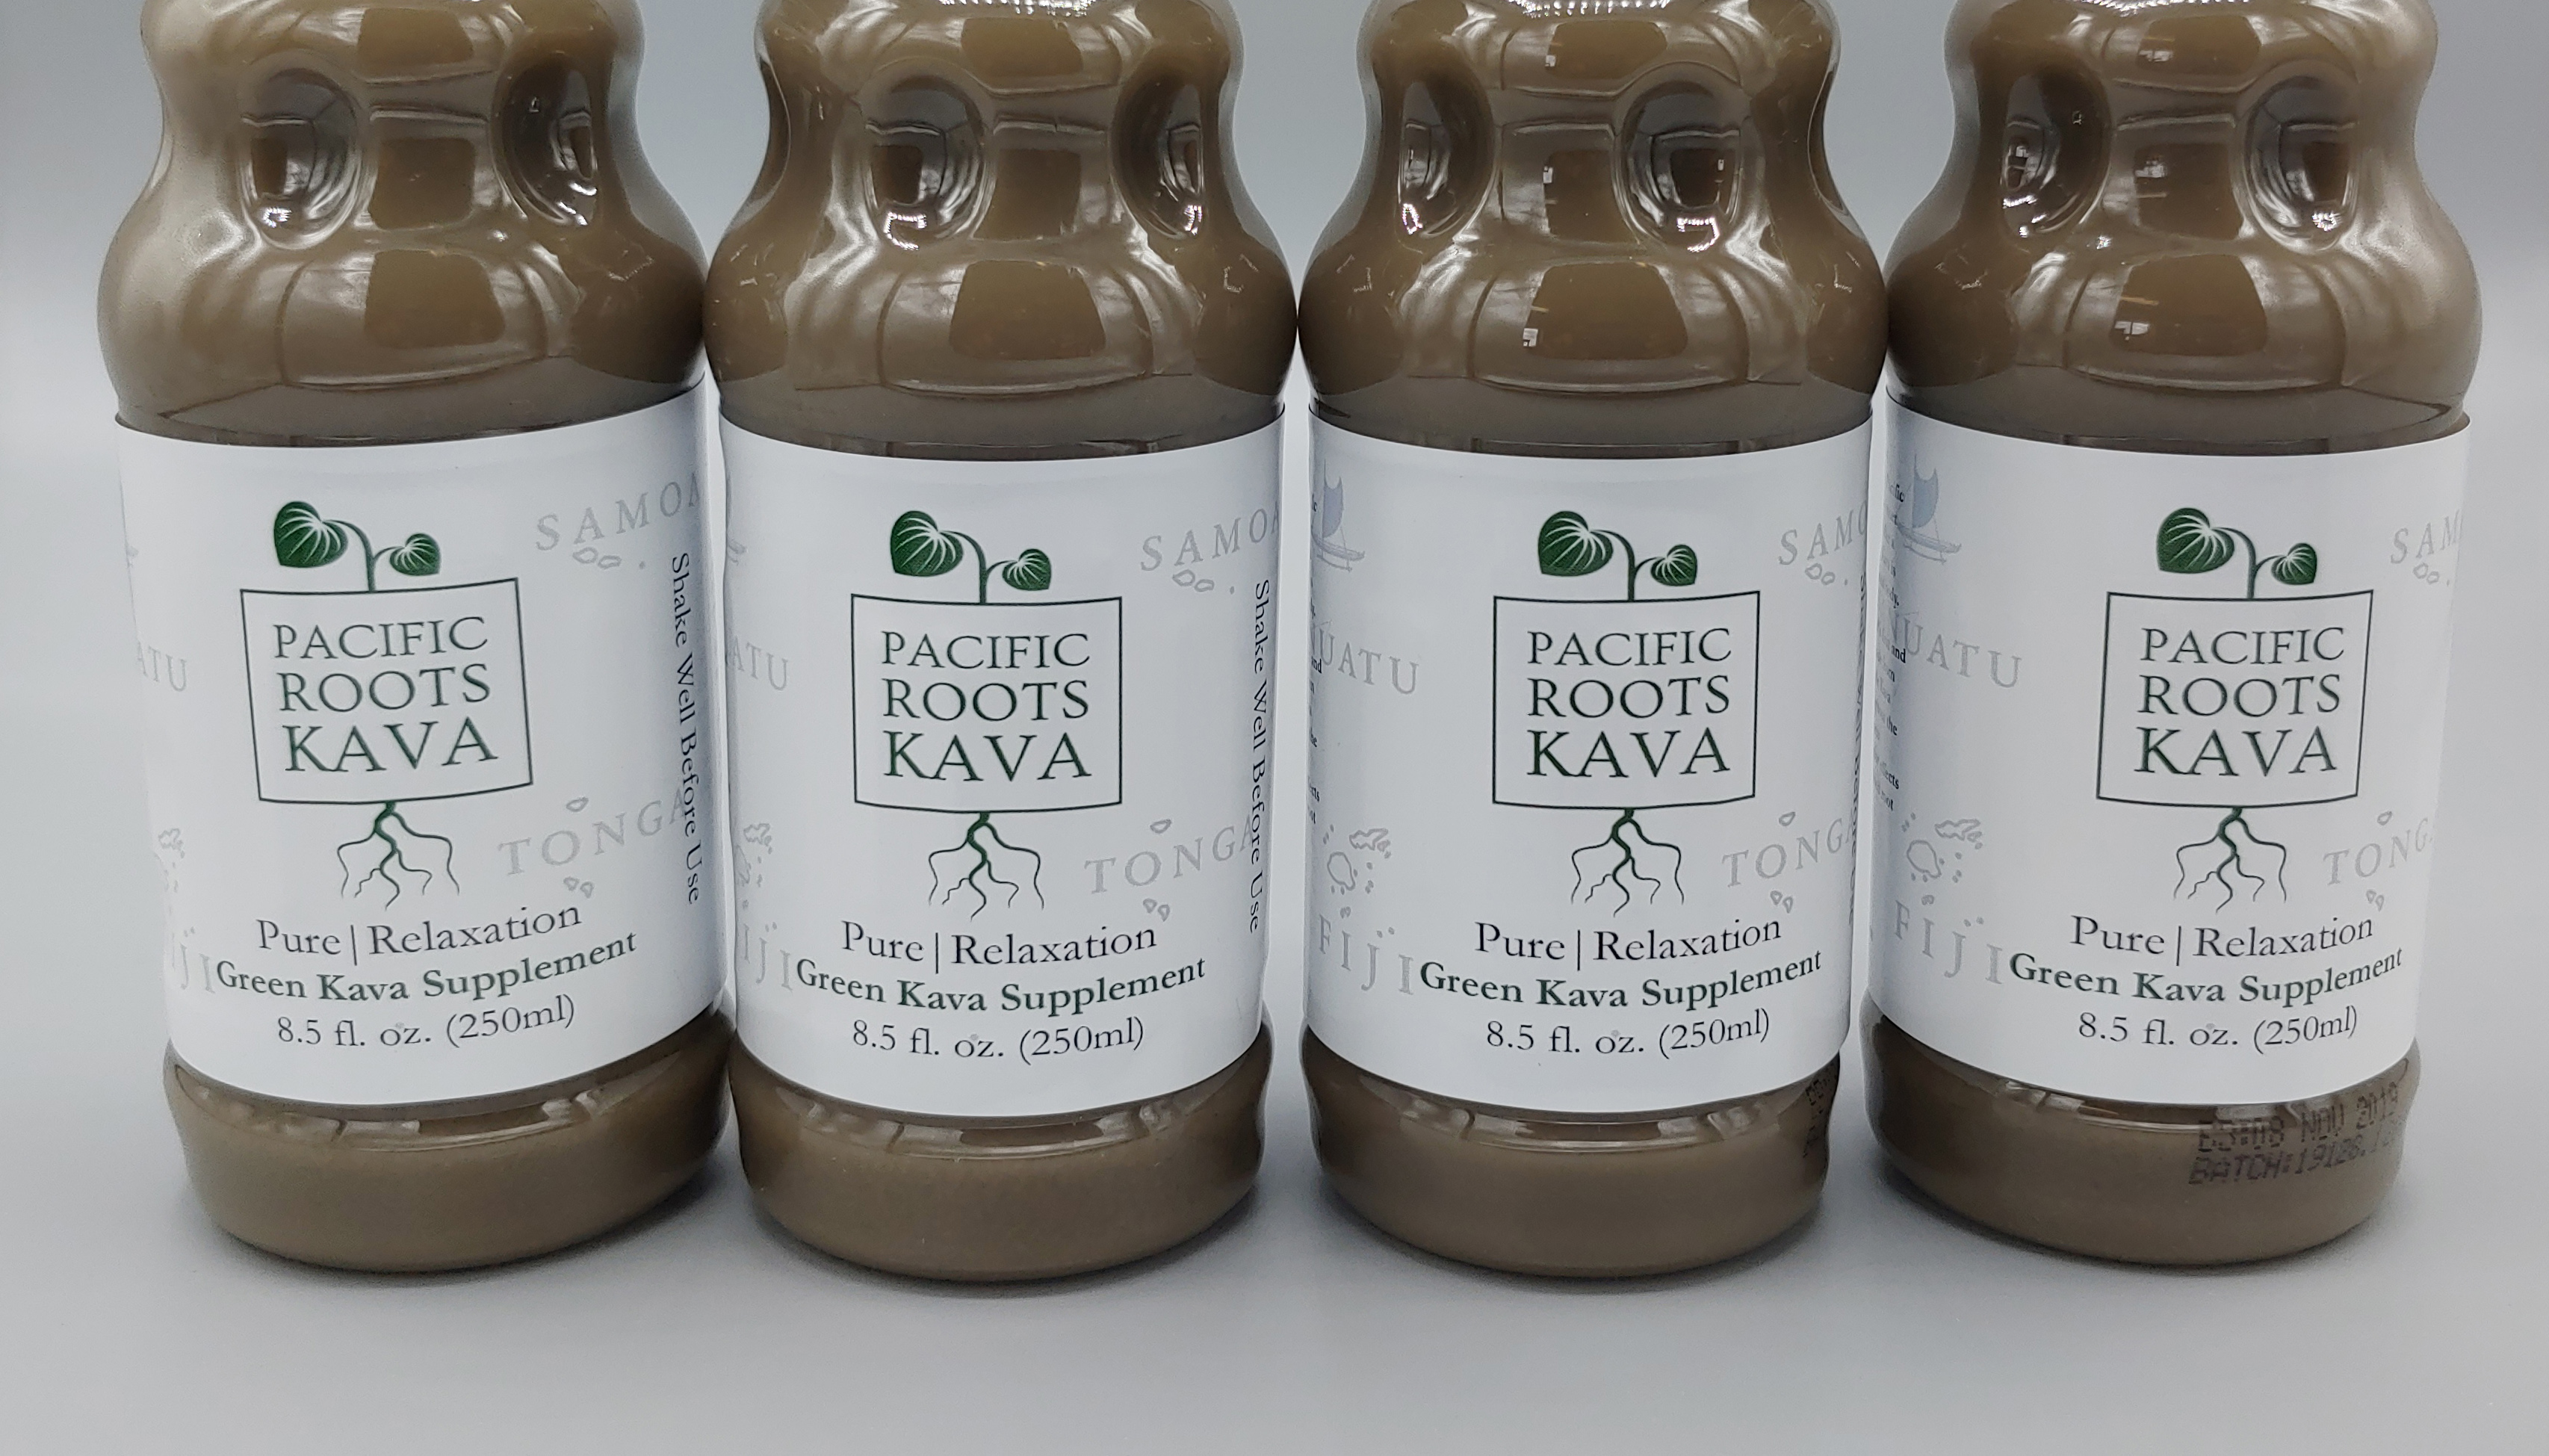 Pacific Roots Kava Bottles (2).jpg